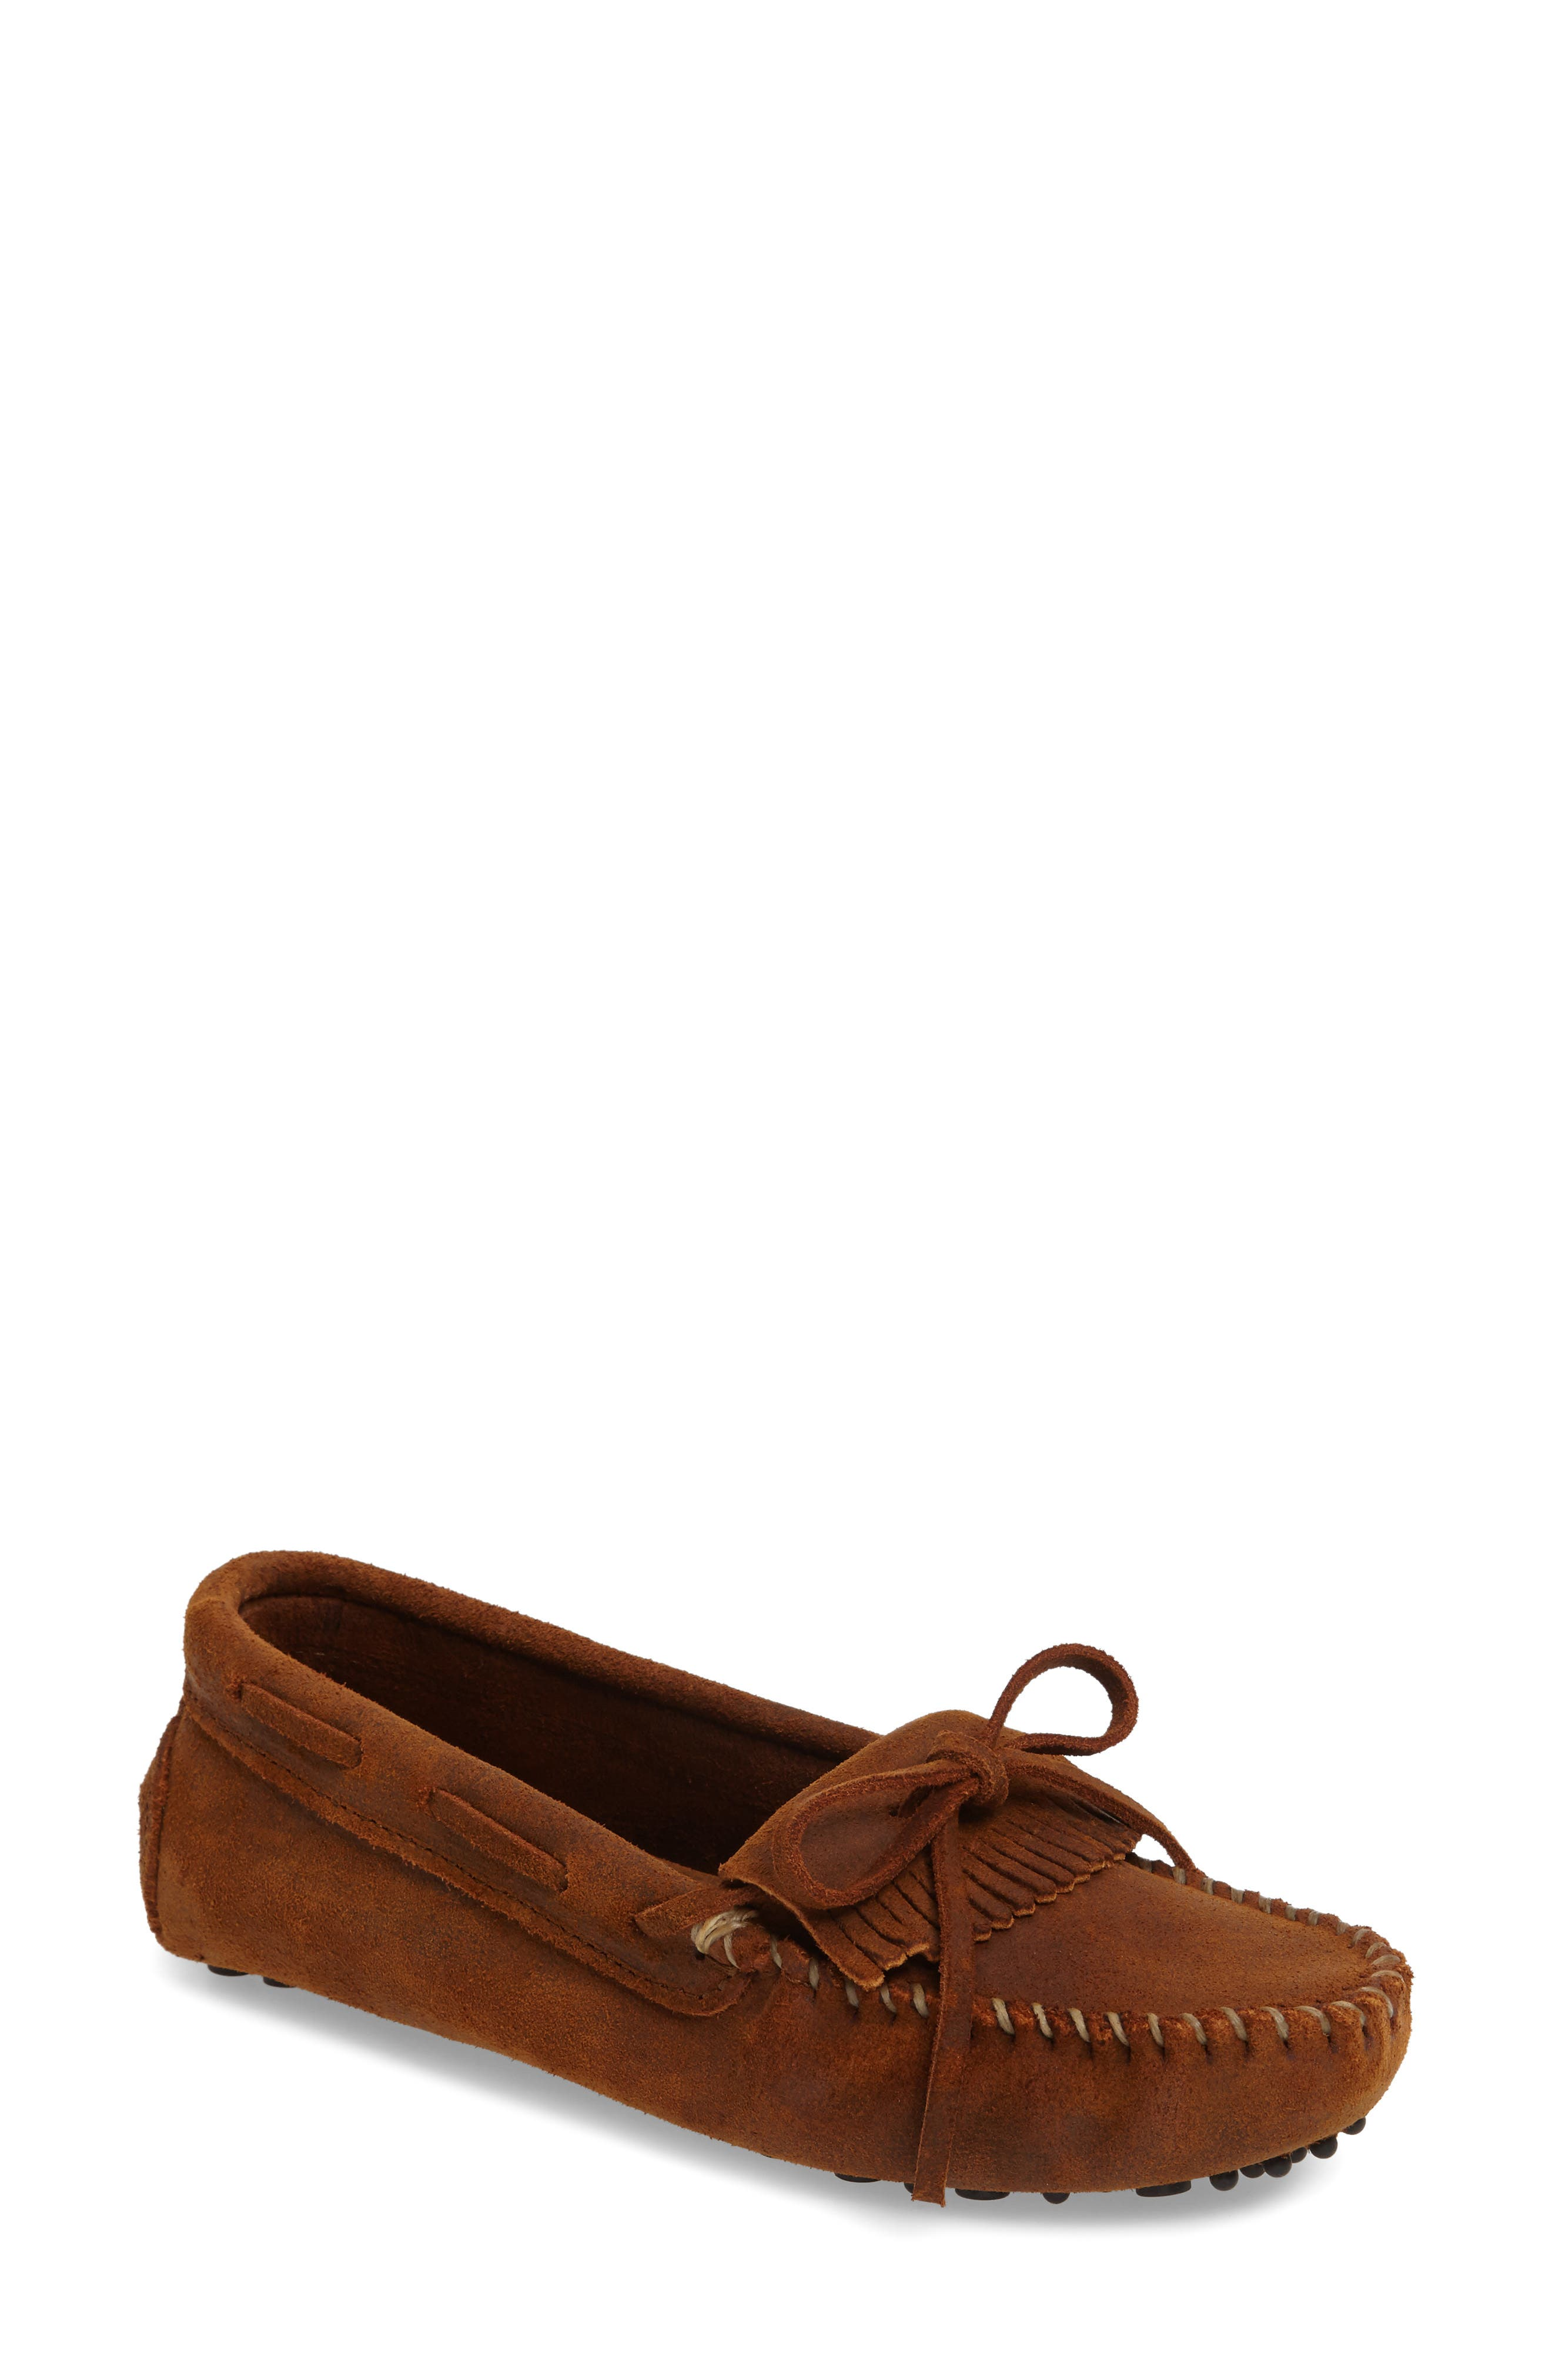 Kilty Driving Moccasin,                         Main,                         color, BROWN RUFF